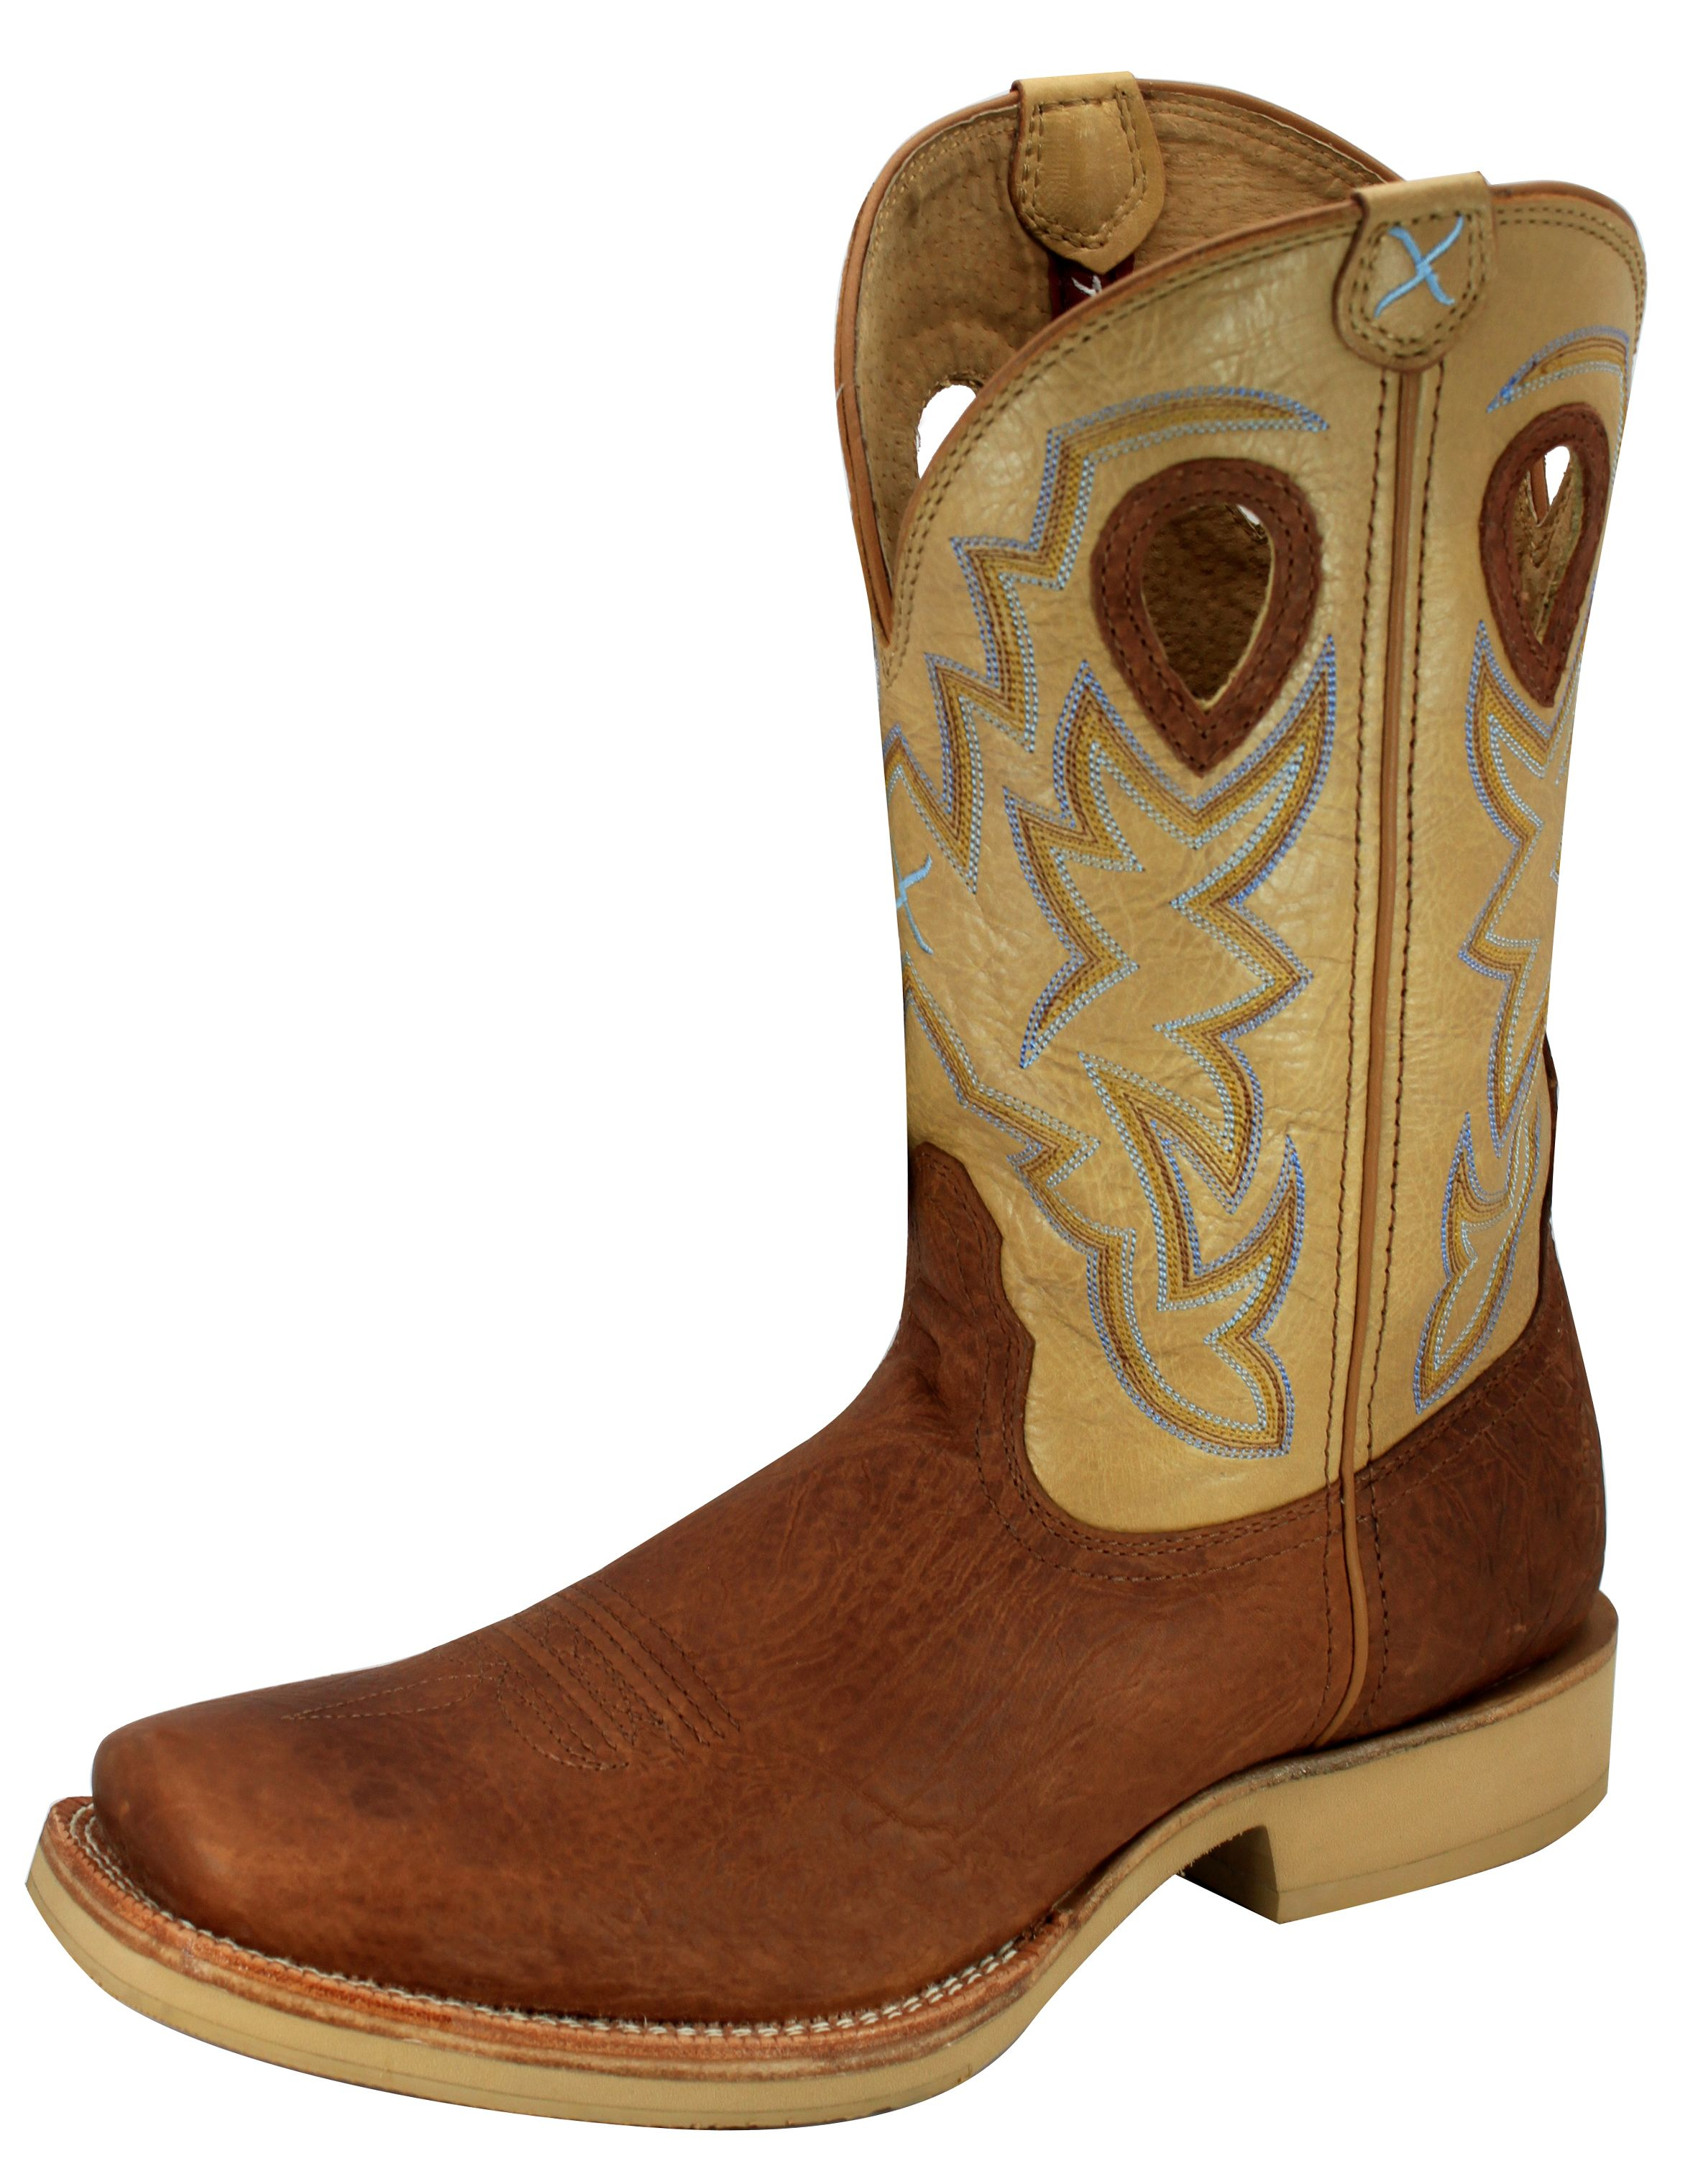 90b0b58d247 Twisted X Boots - Men's Horseman - MHM0017 | Silver Buckle ...